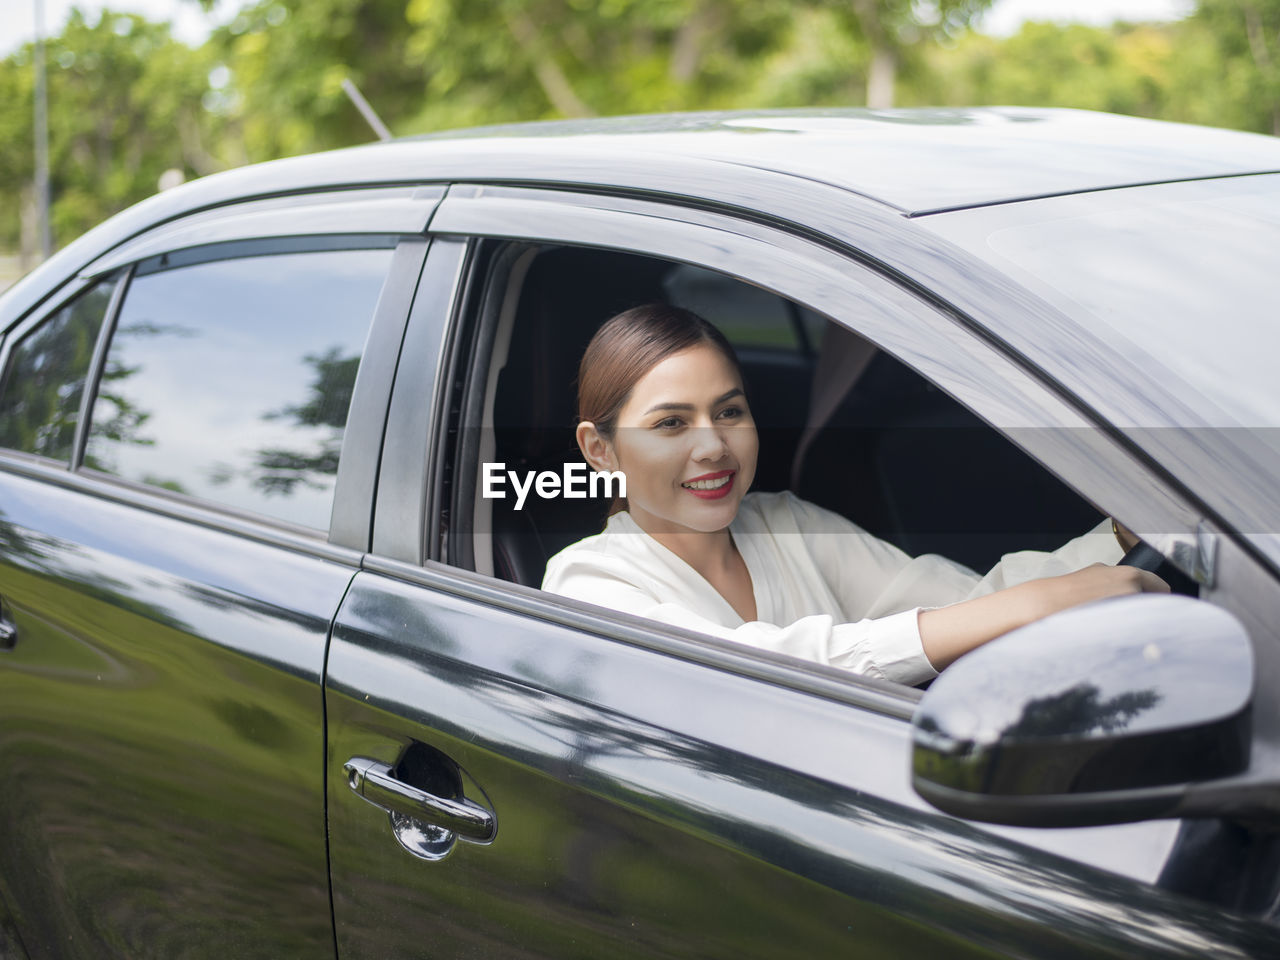 mode of transportation, motor vehicle, car, transportation, land vehicle, portrait, smiling, one person, women, happiness, looking at camera, lifestyles, adult, window, headshot, young adult, young women, glass - material, real people, leisure activity, outdoors, beautiful woman, car door